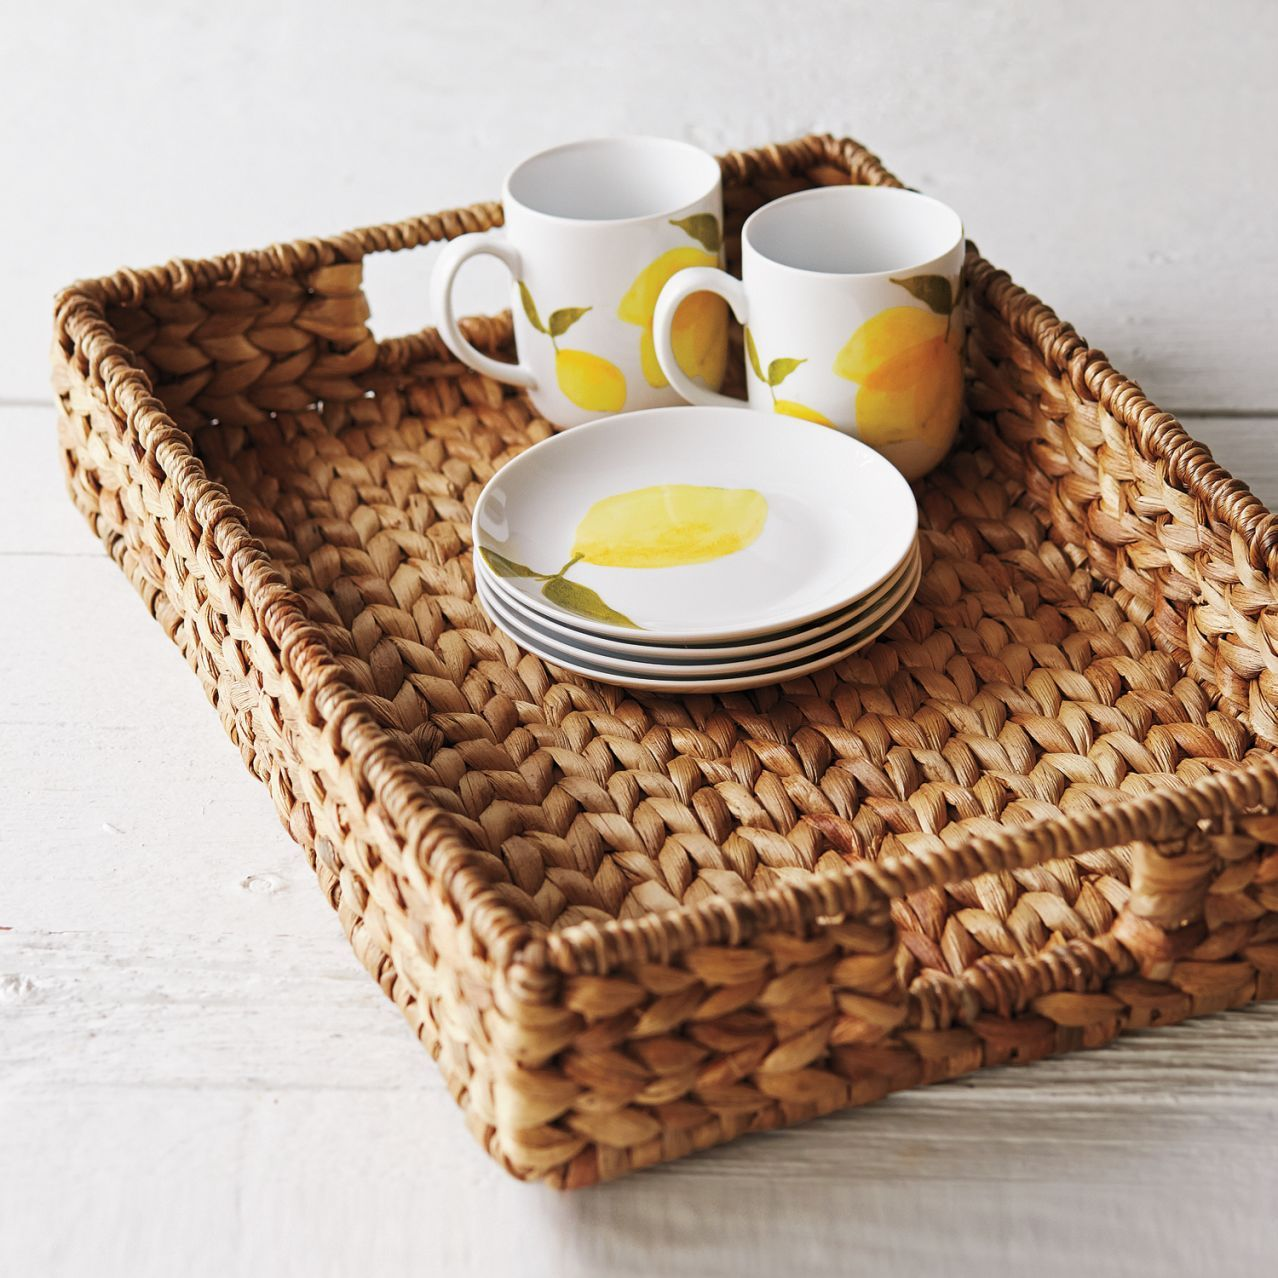 Water Hyacinth Tray Sur La Table Entertaining Tray